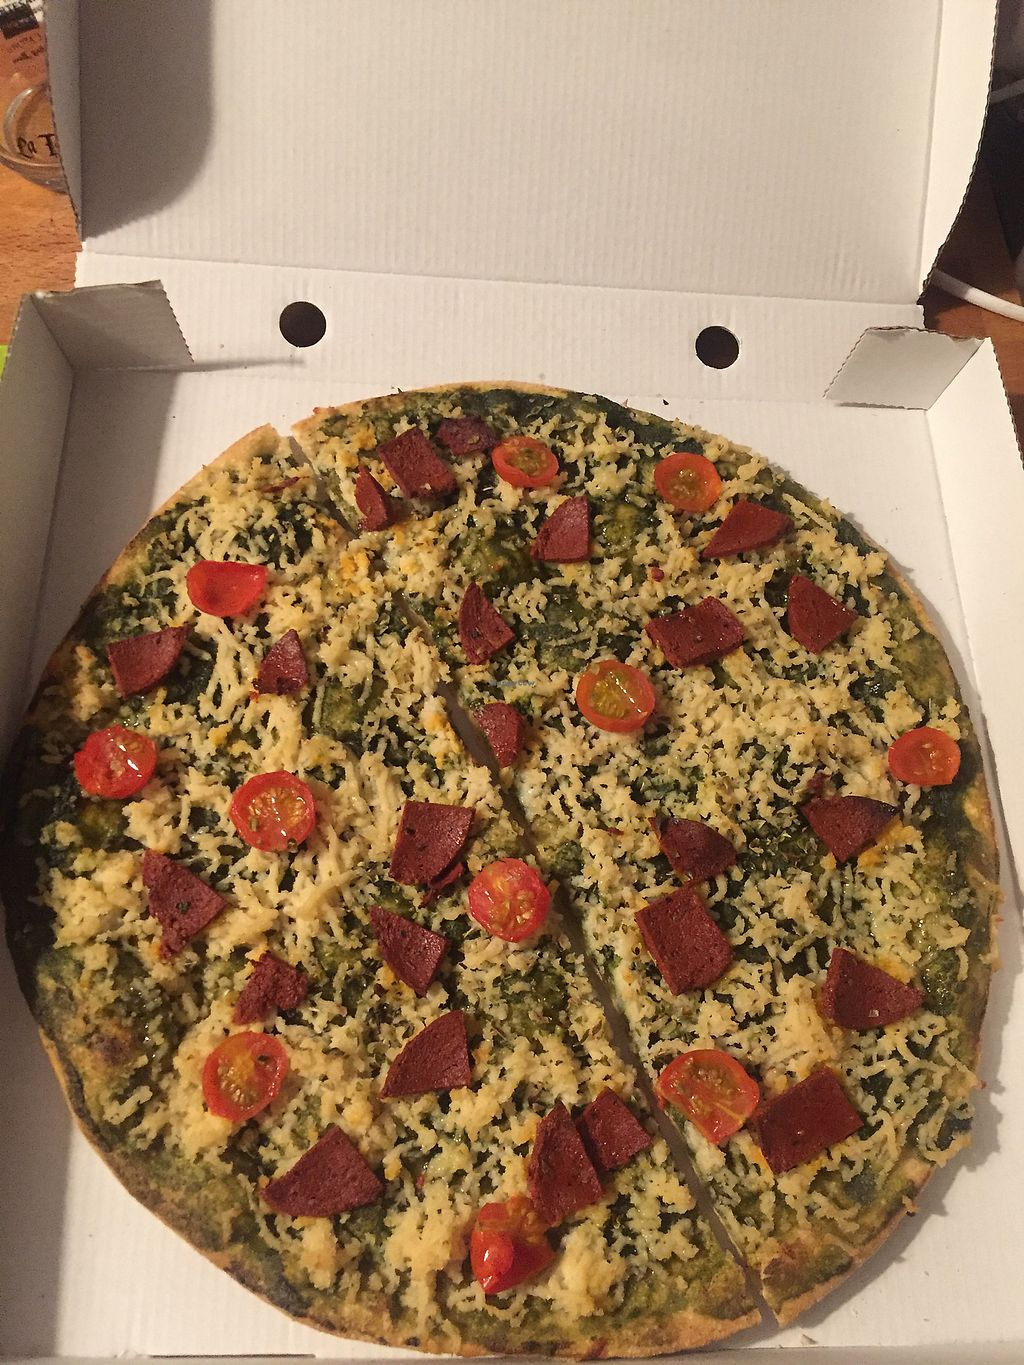 """Photo of Dolce Pizza y Los Veganos - Hipolit Lazaro  by <a href=""""/members/profile/Jameskille"""">Jameskille</a> <br/>Pesto pizza <br/> September 5, 2017  - <a href='/contact/abuse/image/52506/301297'>Report</a>"""